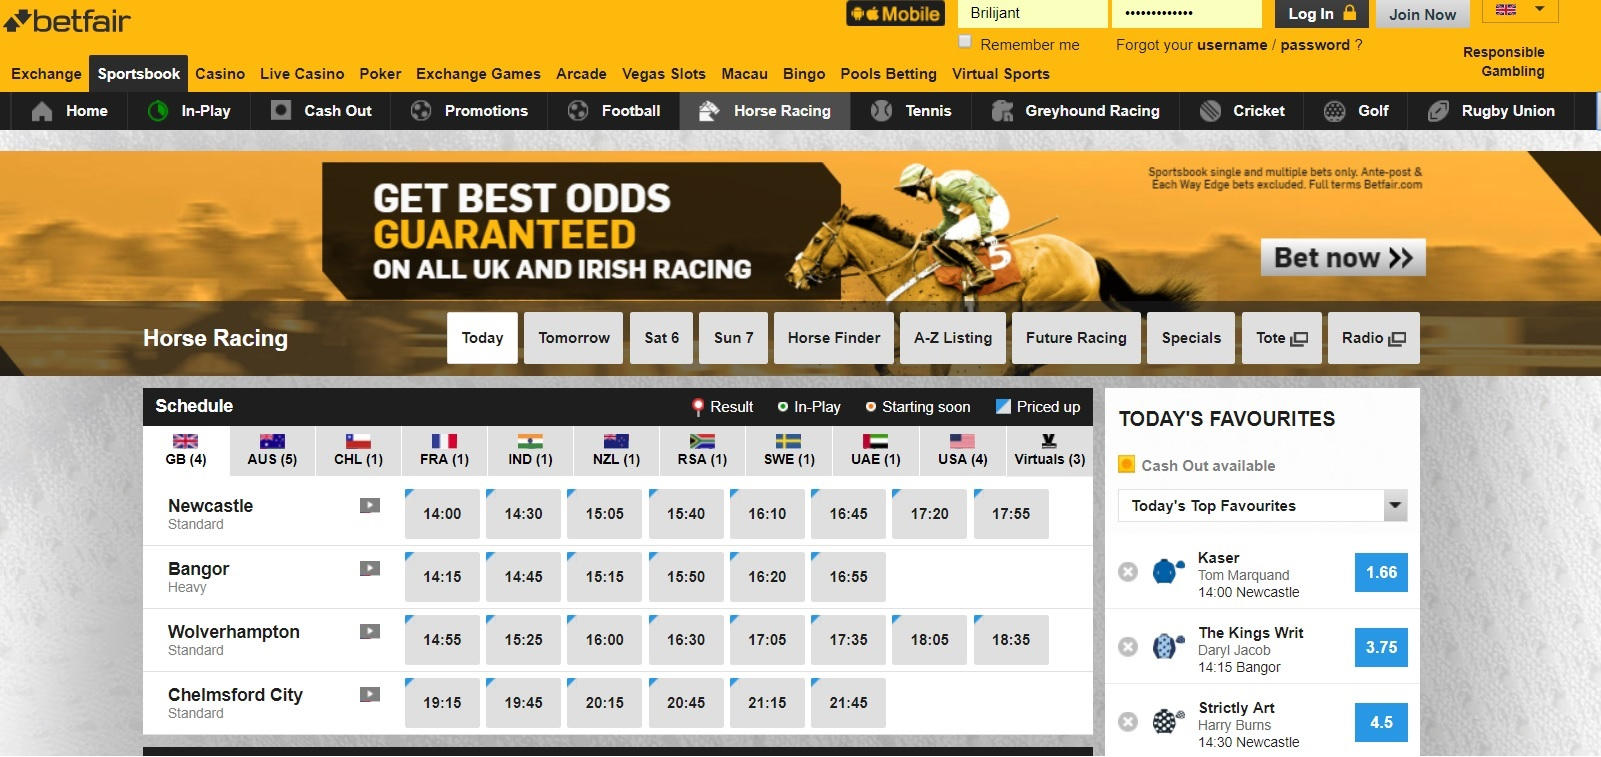 Best Odds Guaranteed Offer on Horse Racing